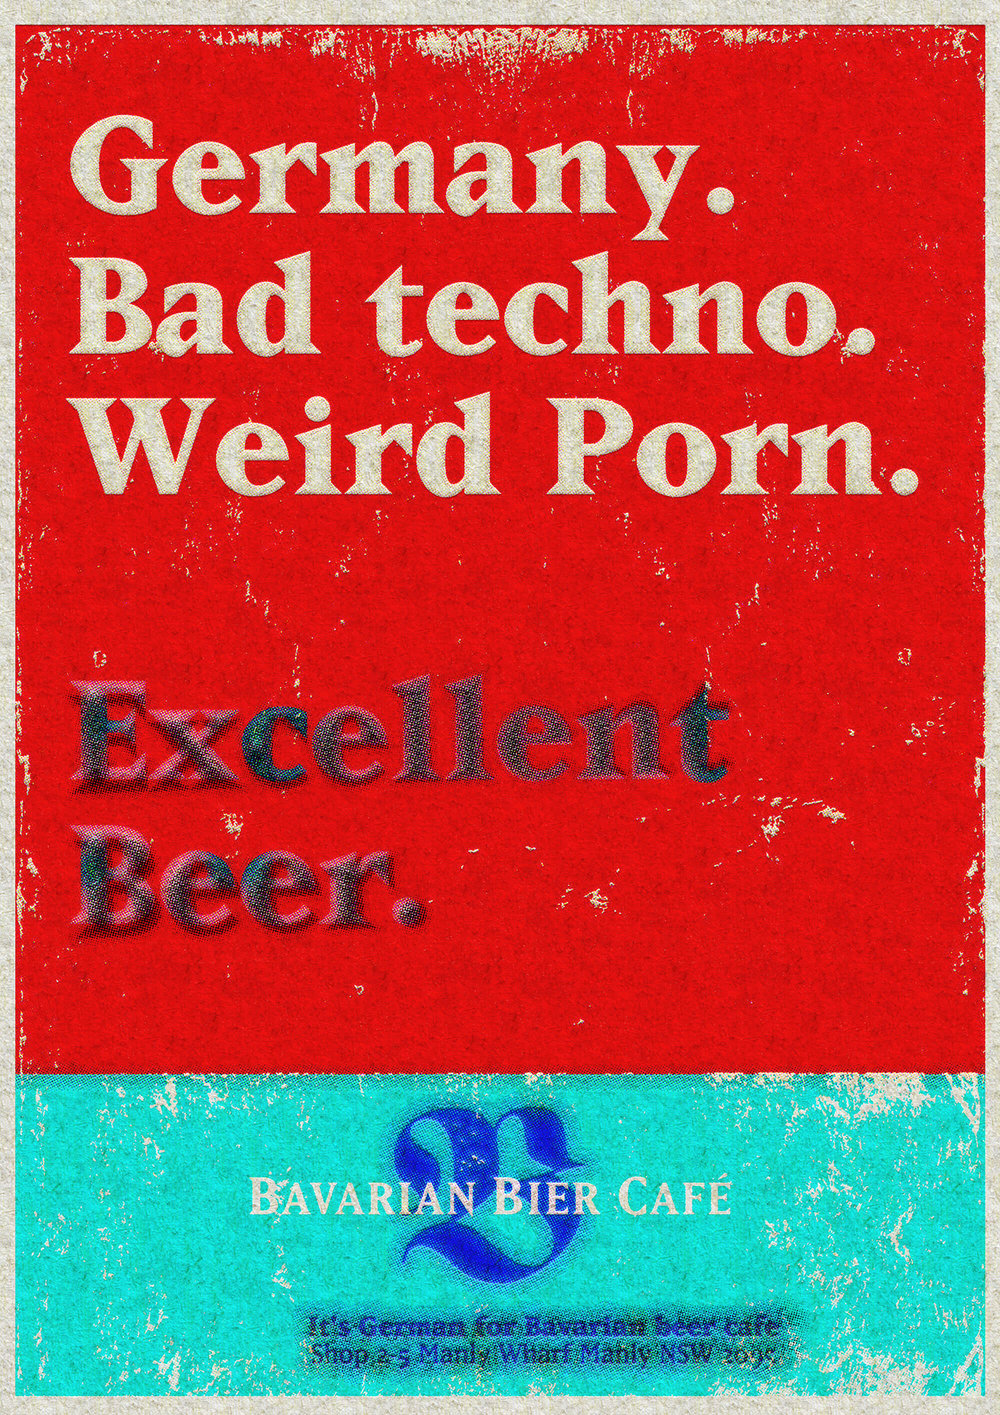 Bavarian Bier Café: print Ad. Germany. Bad techno. Weird porn. Excellent beer.